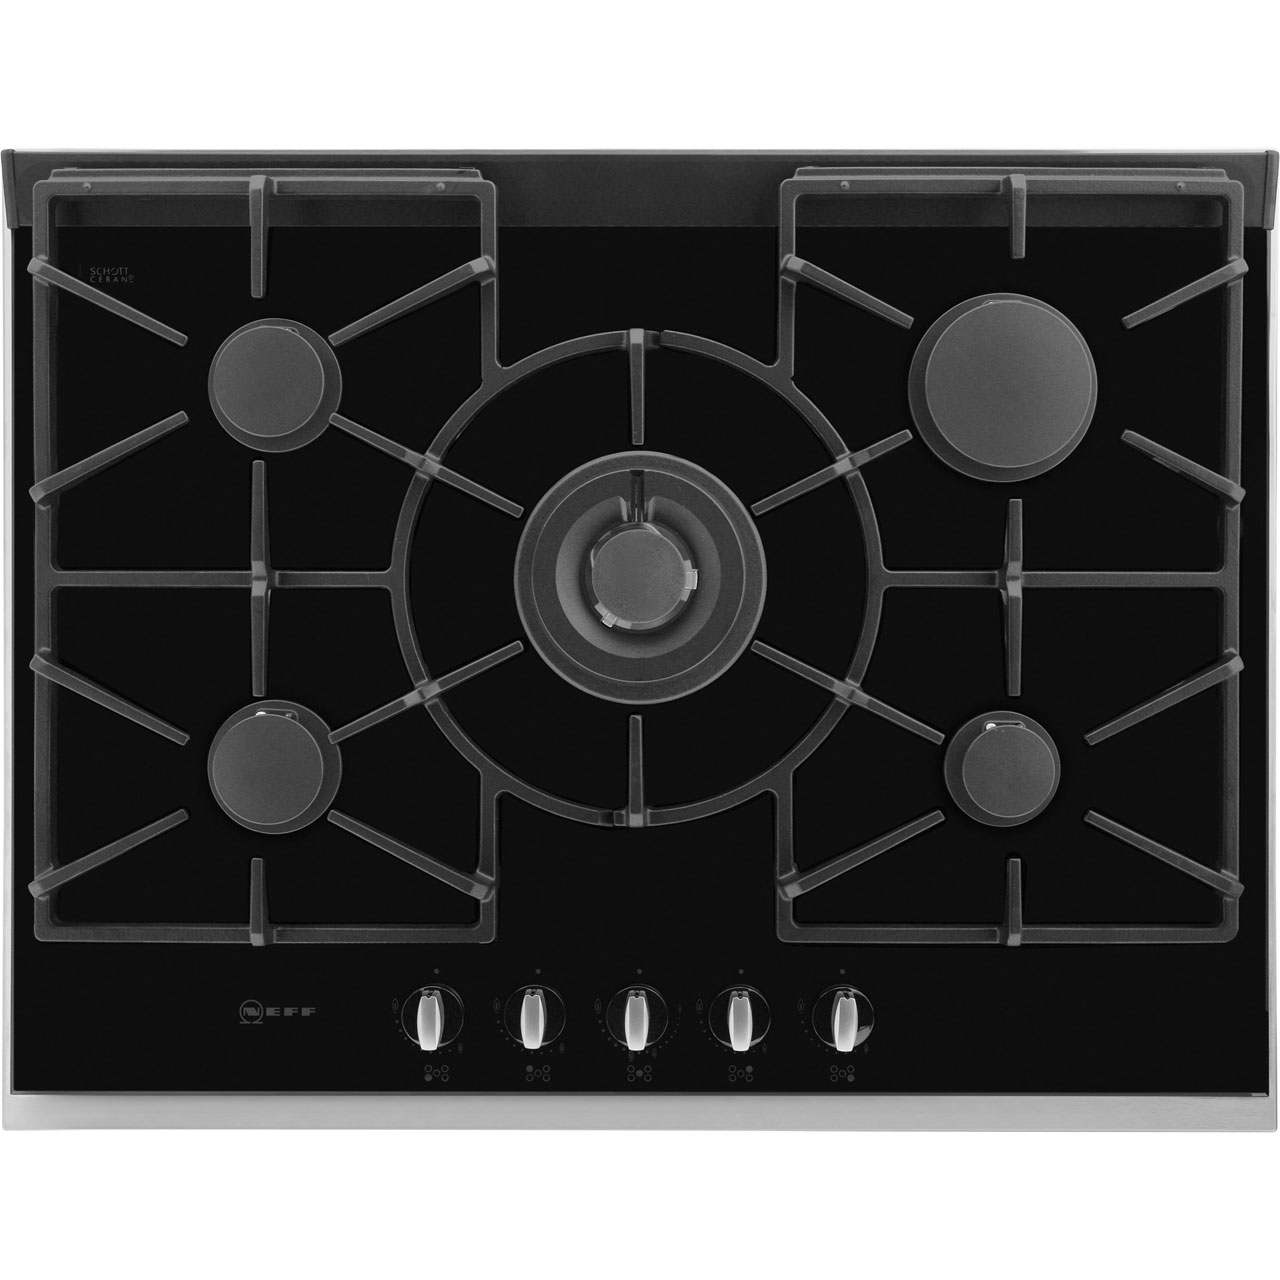 Buy Cheap Neff Hob Compare Hobs Prices For Best Uk Deals